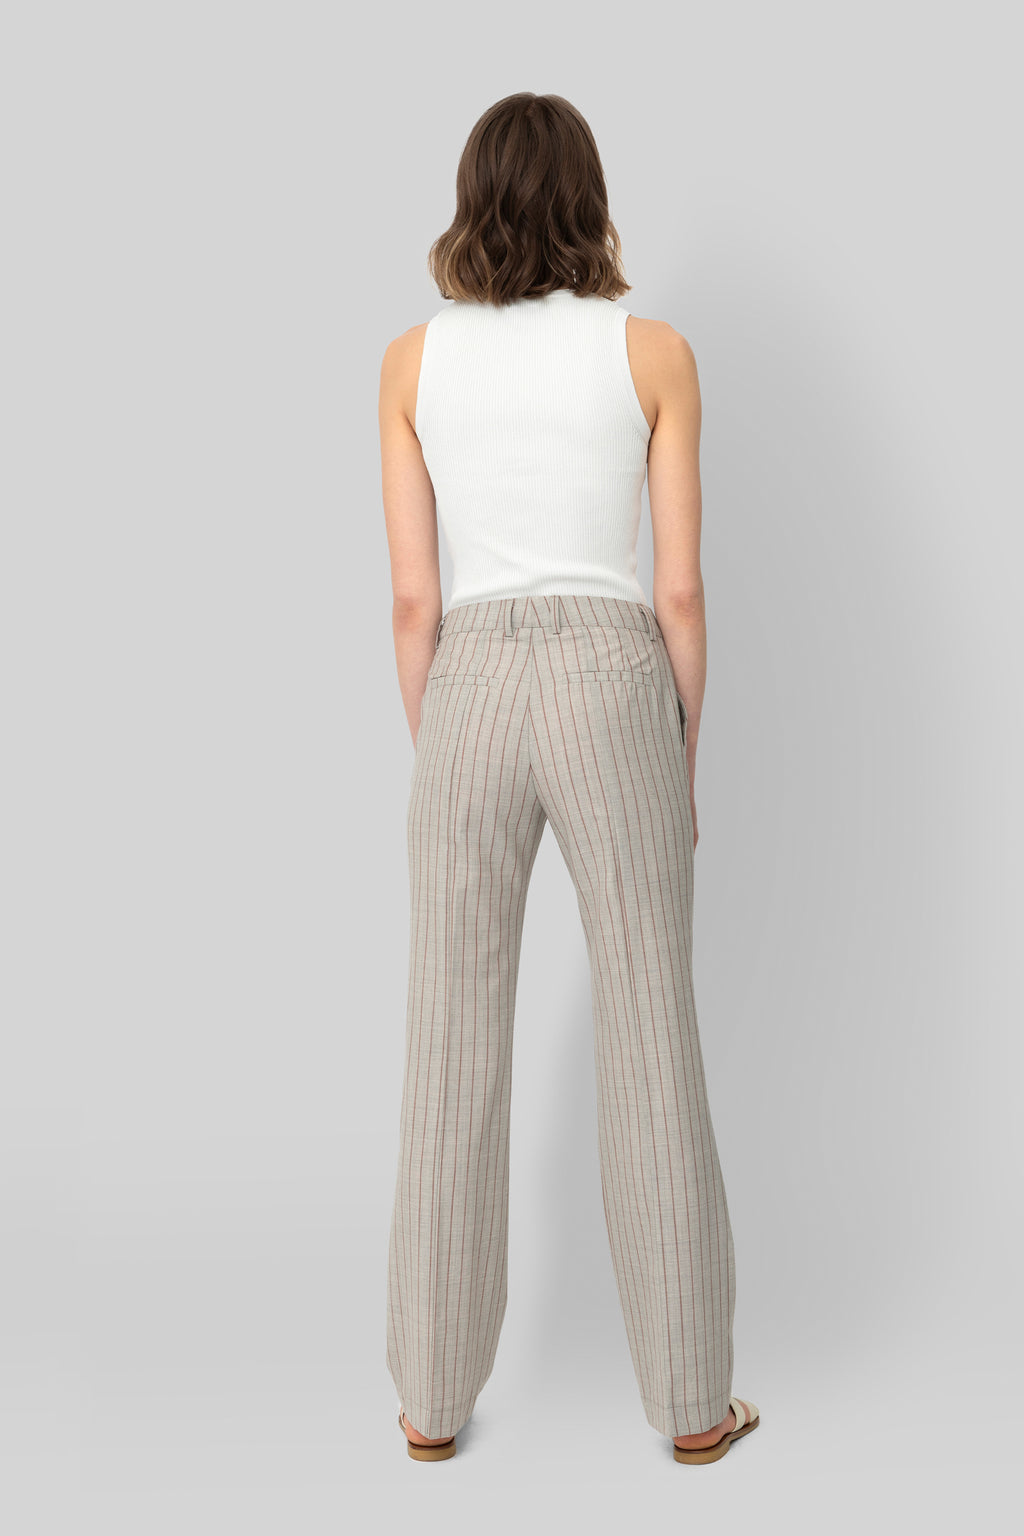 The Grey and Salmon Wool Lover Pants